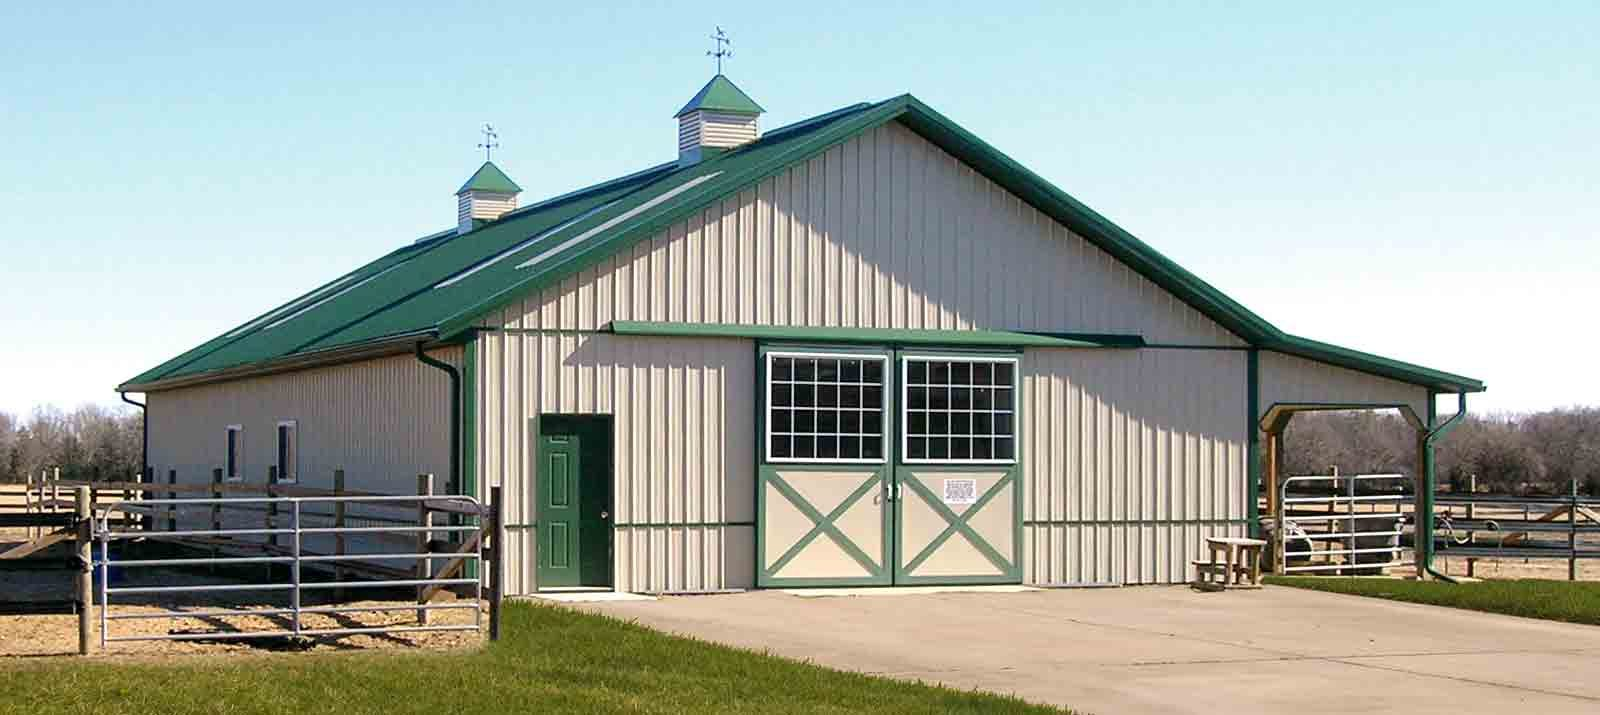 cb-slider-ag-barns-2